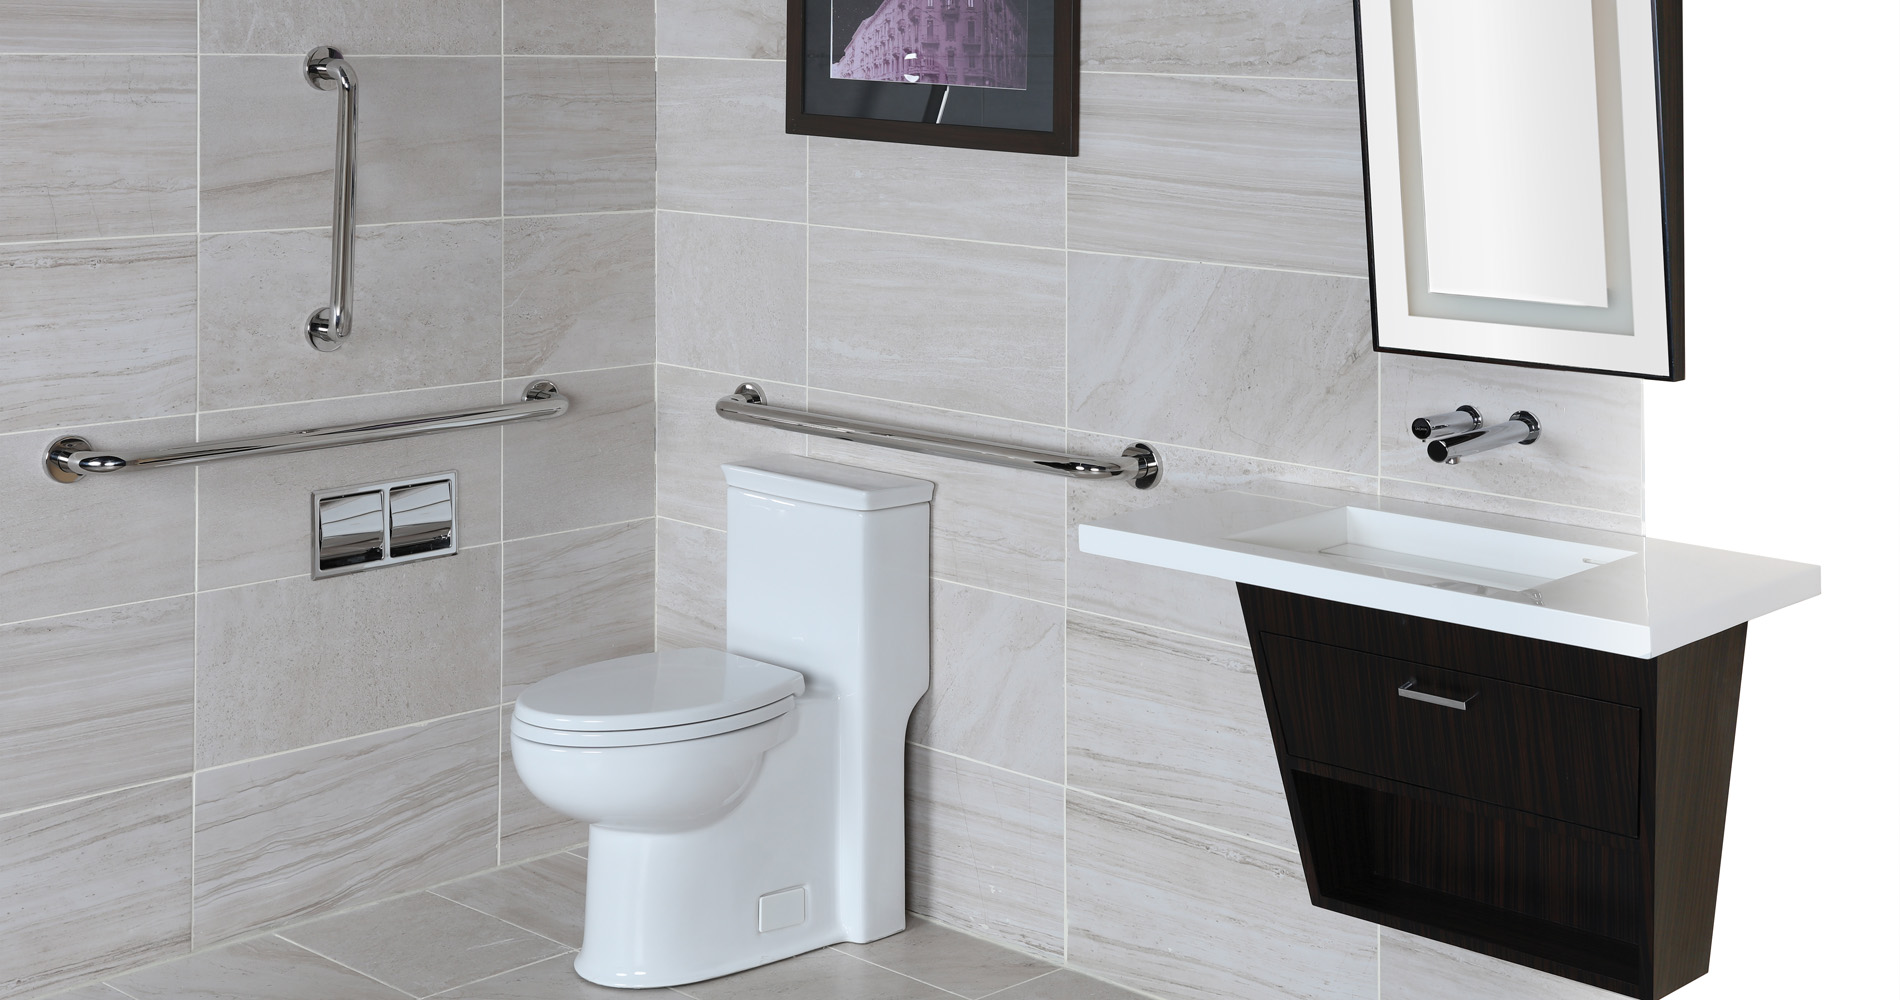 Bathroom and toilet accessories - Bathroom And Toilet Accessories 56